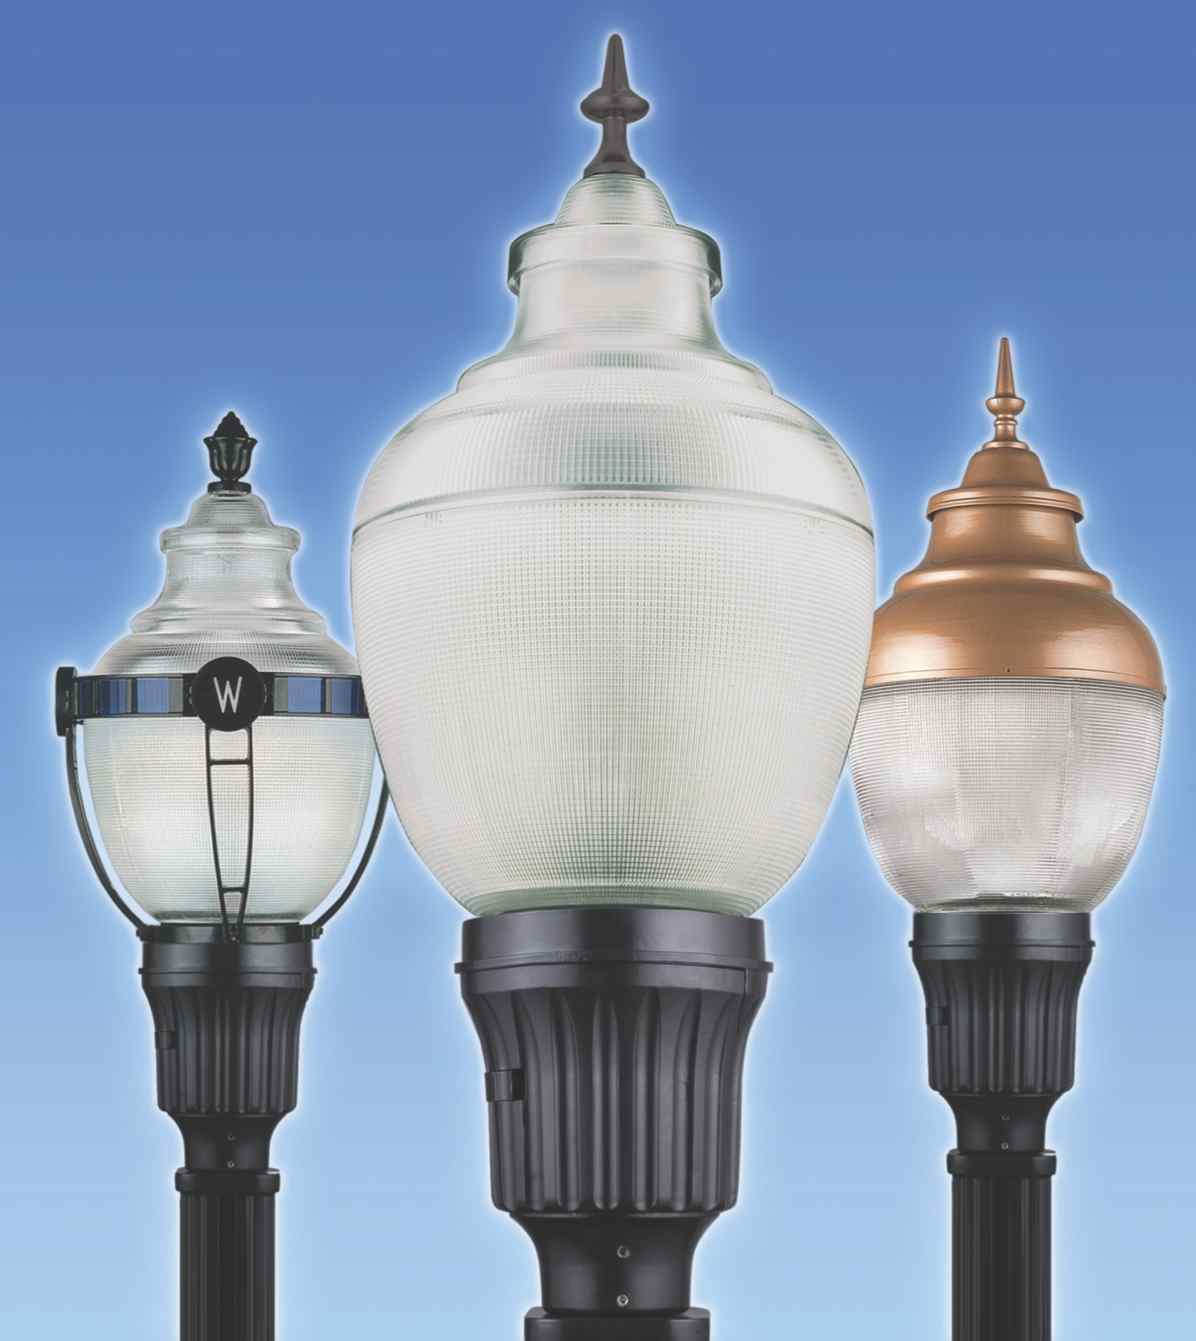 awde lowres outdoor lighting acuity brands news page 2  at alyssarenee.co